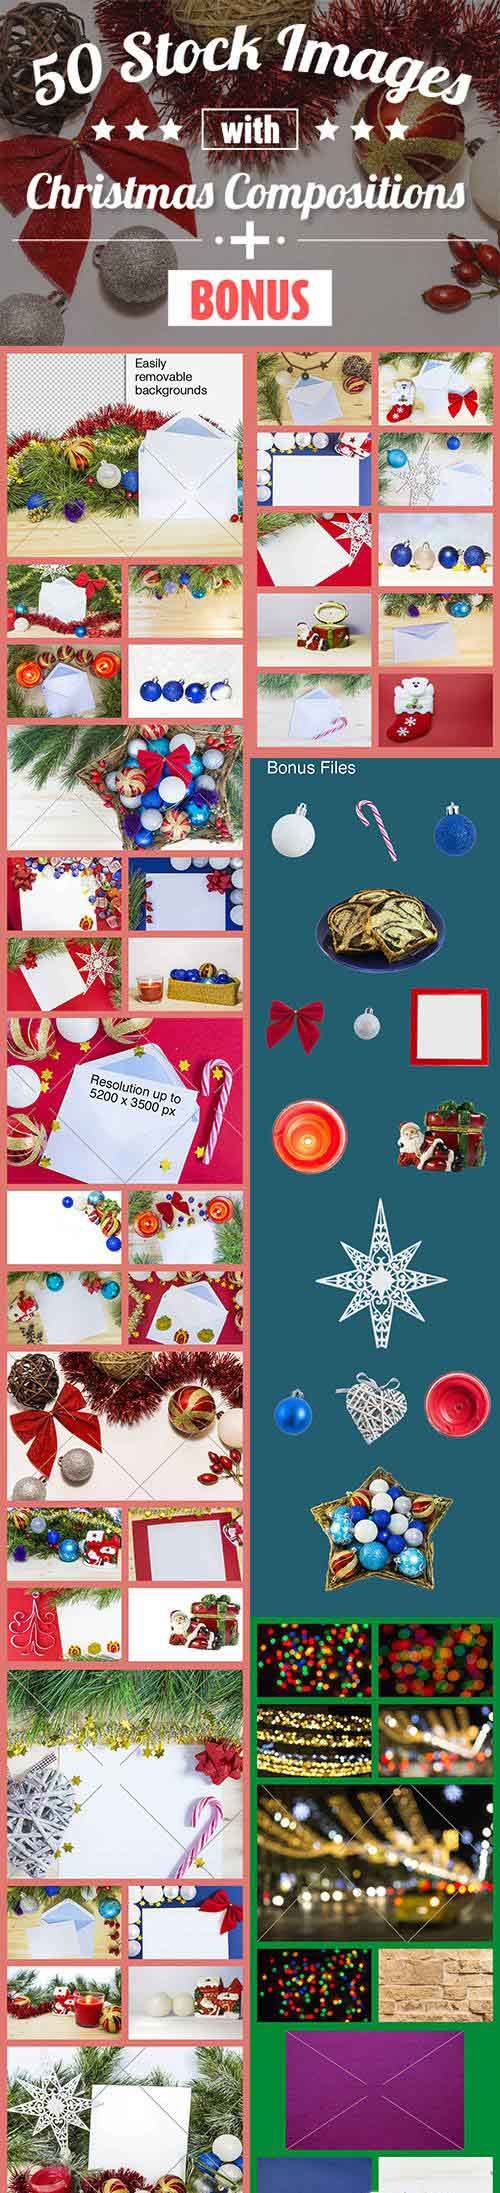 50 Stock Images with Christmas Compositions + Bonus